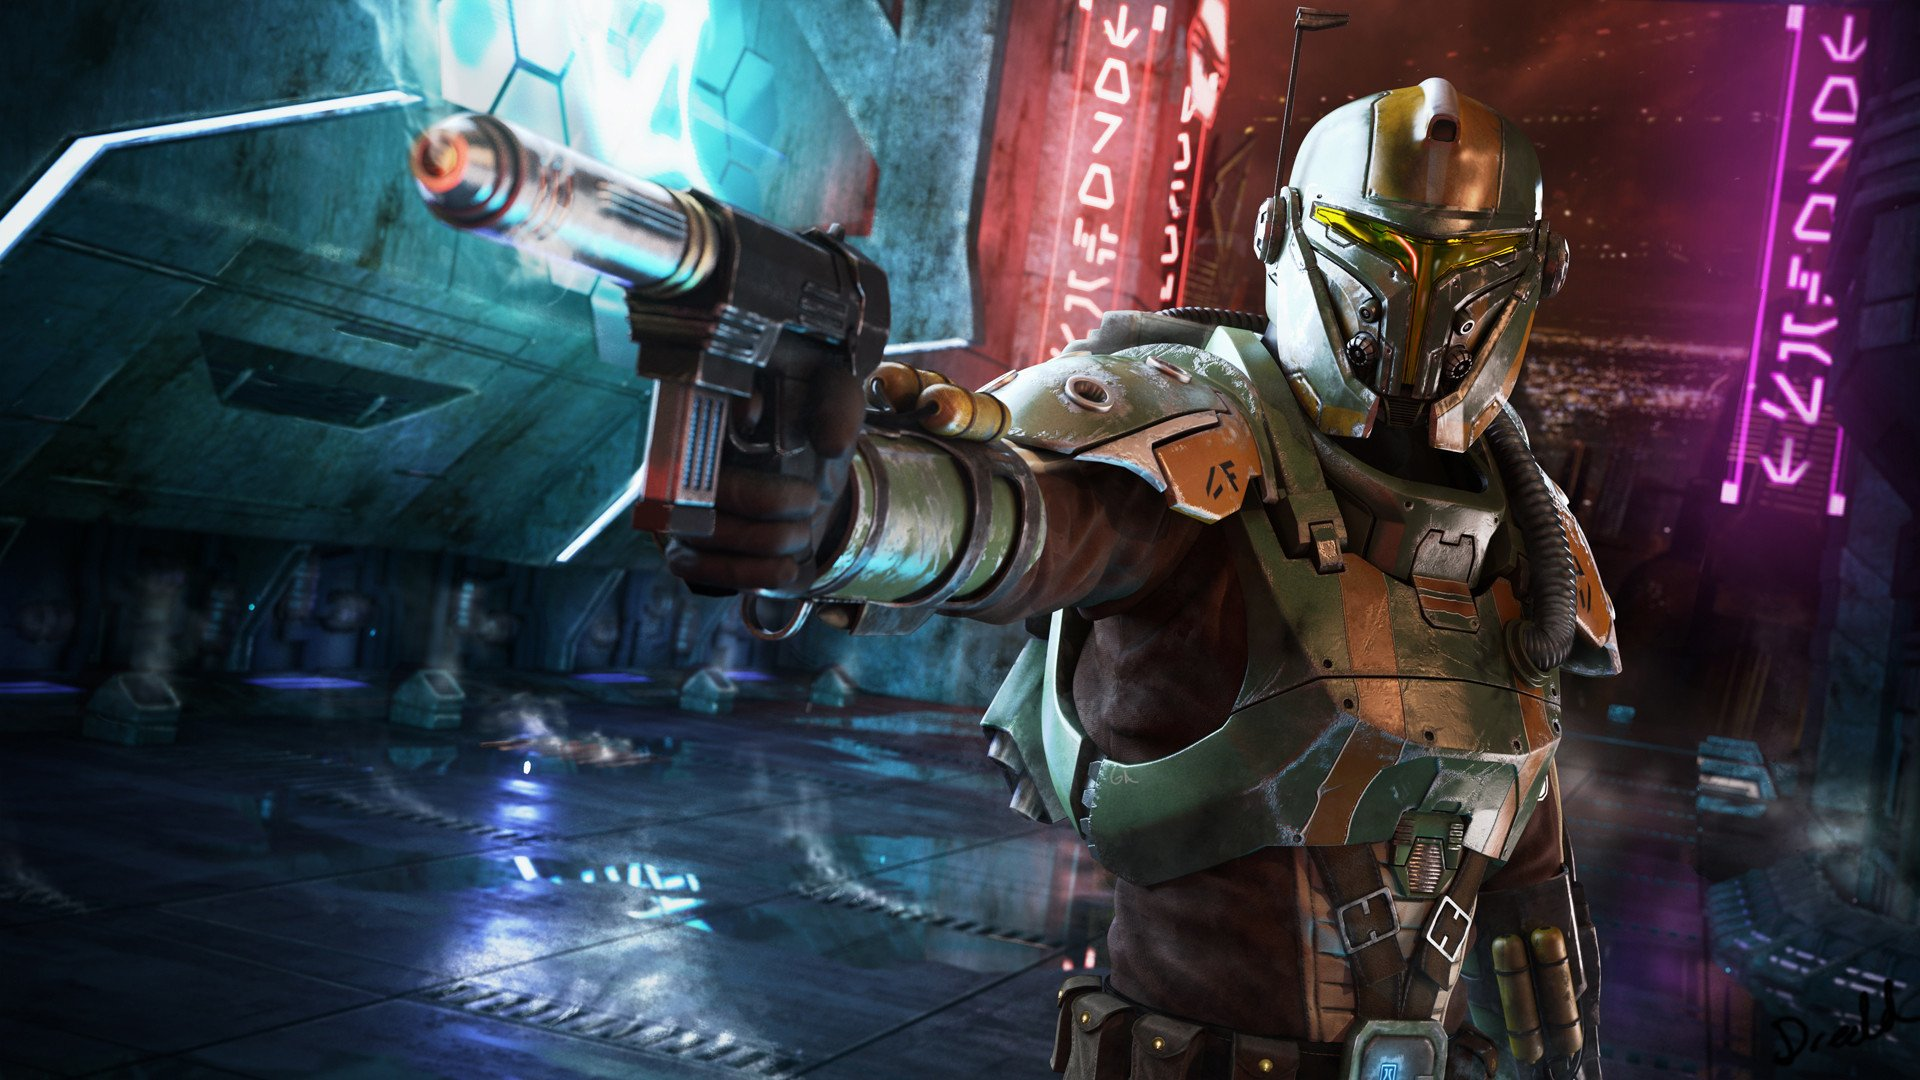 30 Bounty Hunter HD Wallpapers | Backgrounds - Wallpaper Abyss